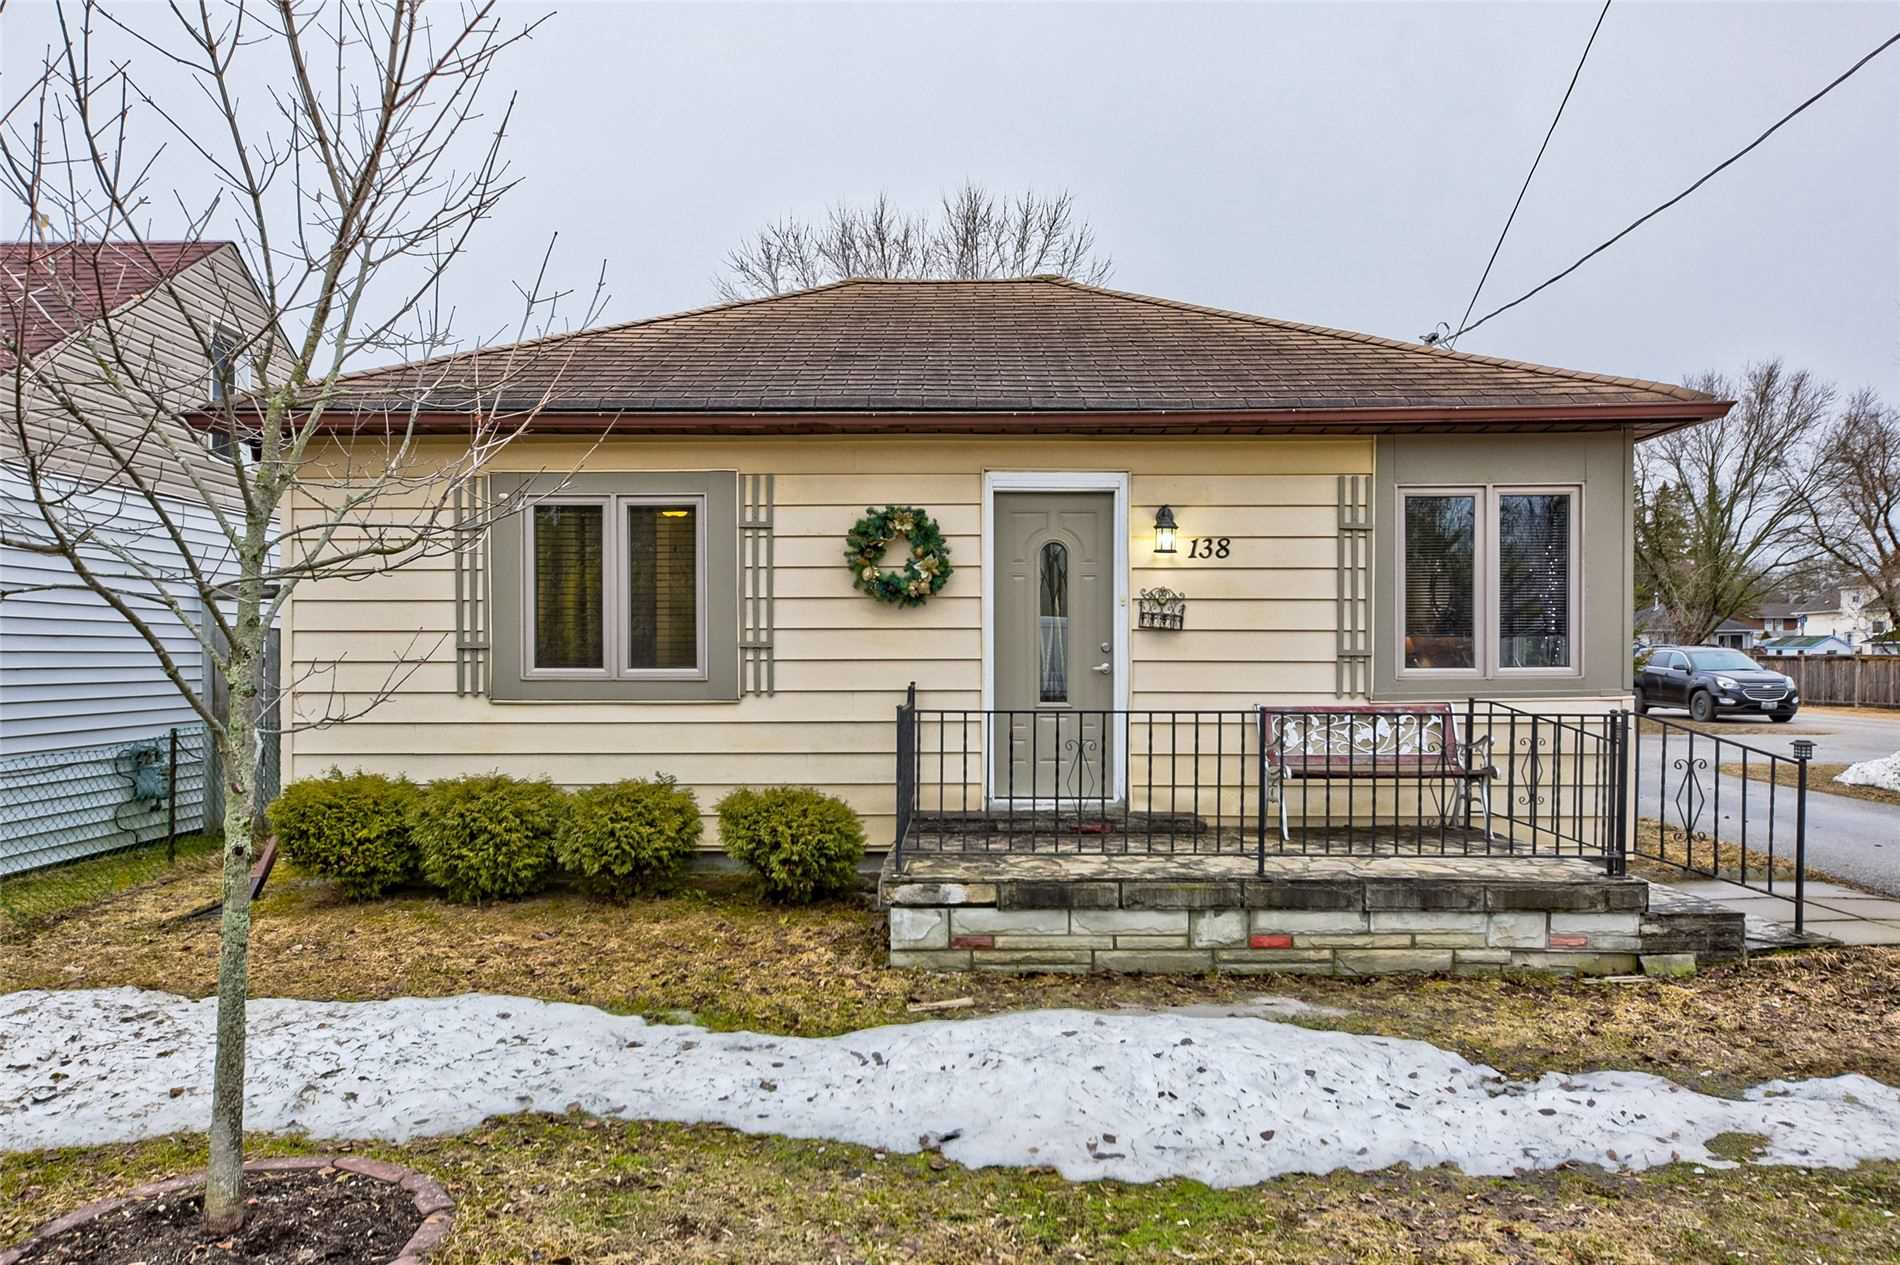 pictures of house for sale MLS: N4728070 located at 138 Queen St, Essa L0M1B0